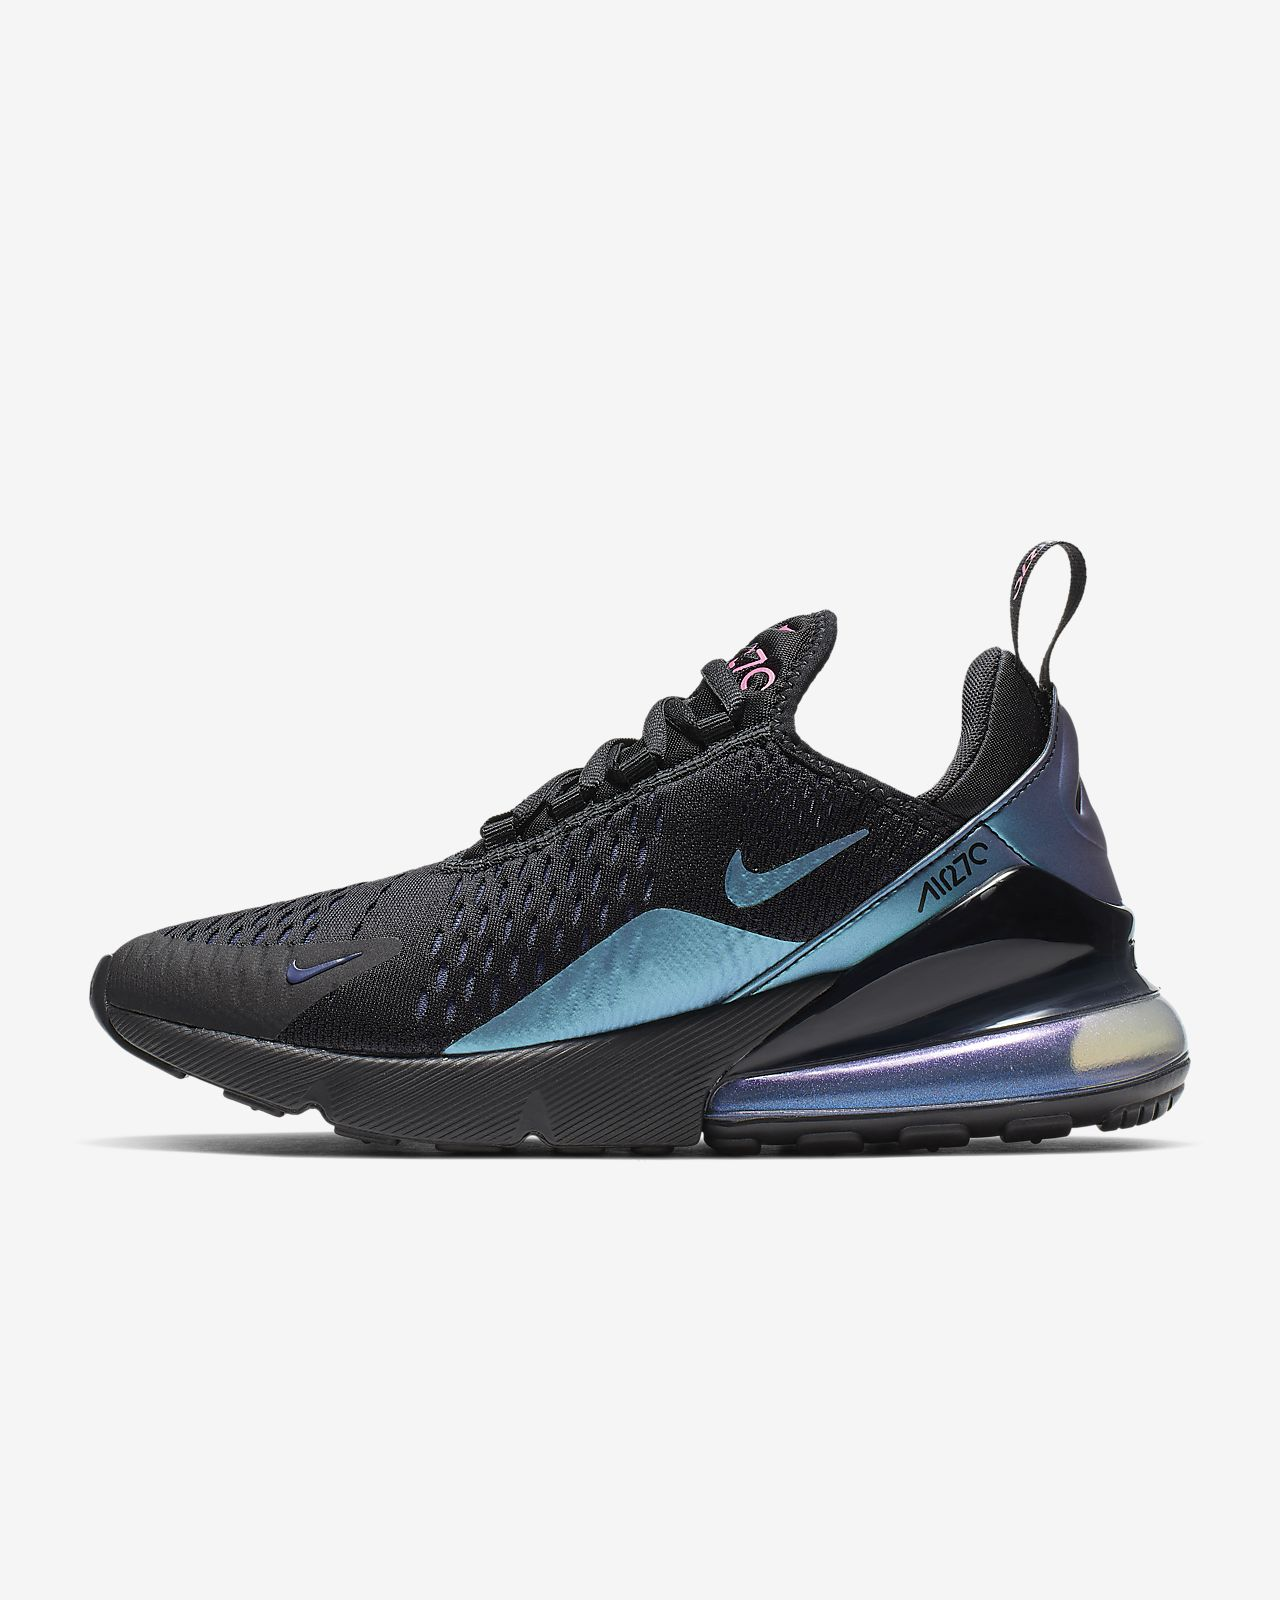 new arrival 0cf65 184e9 ... Nike Air Max 270 Womens Shoe